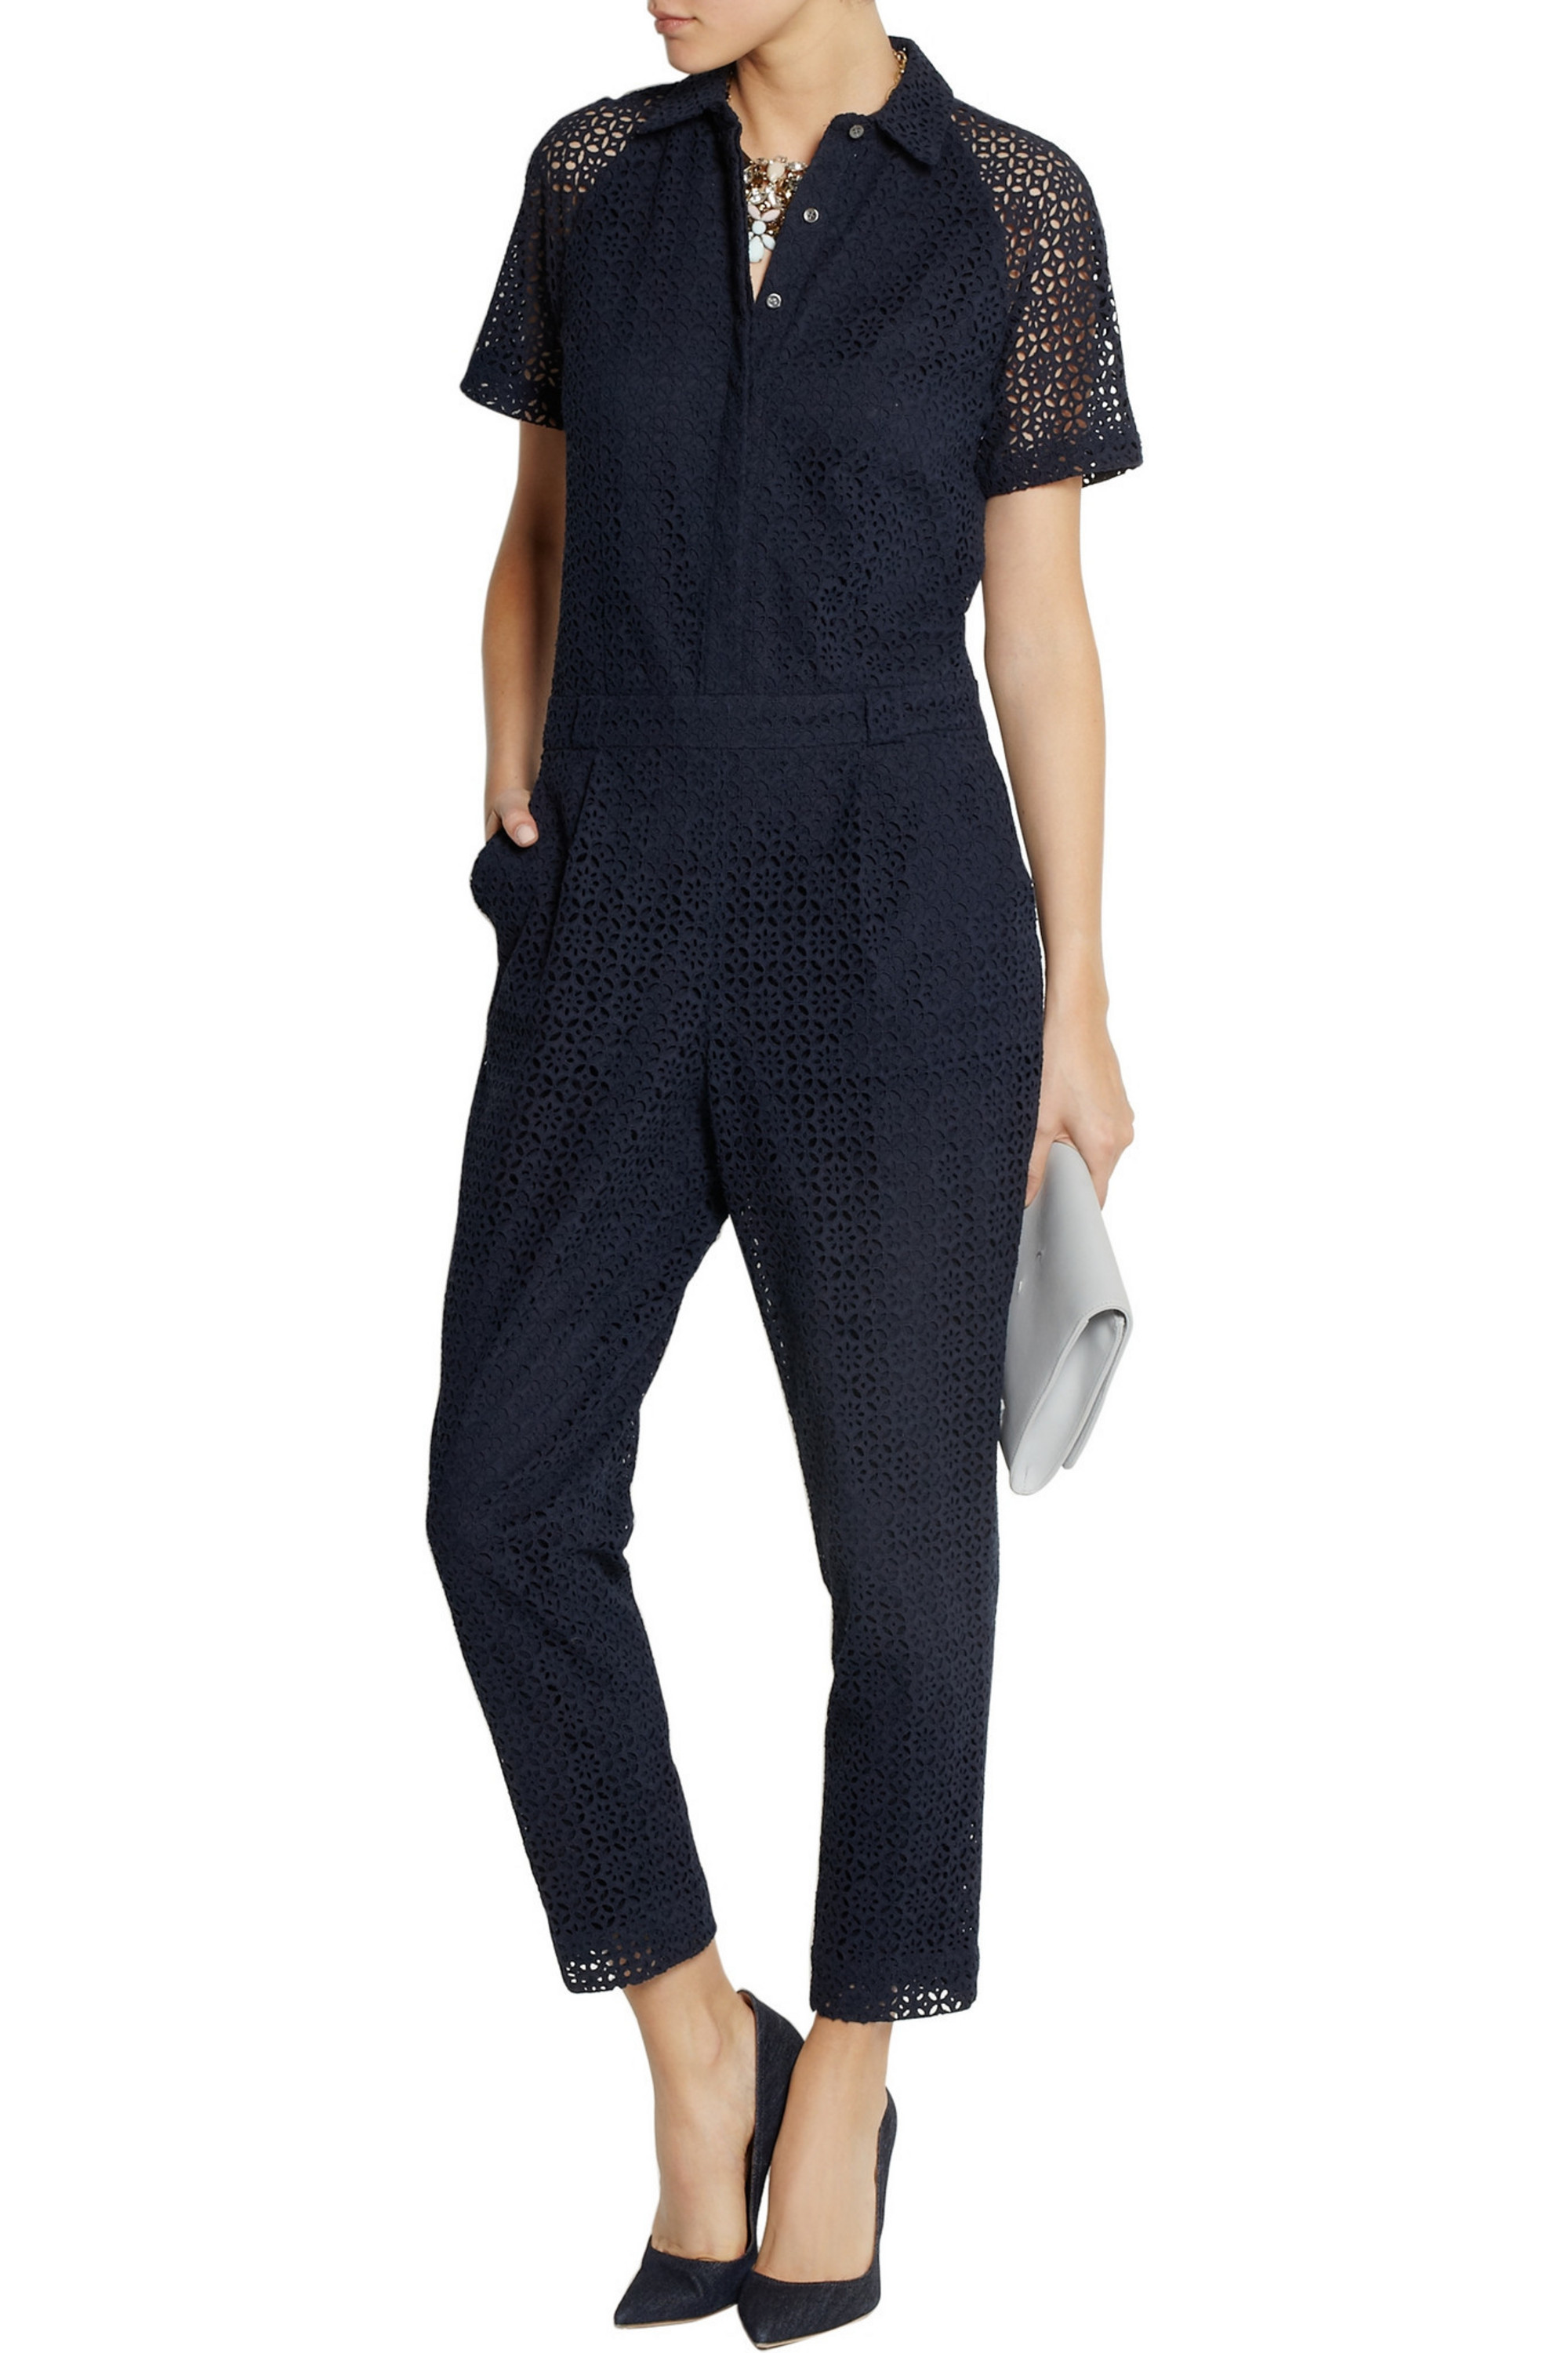 J.Crew Honeysuckle broderie anglaise cotton jumpsuit